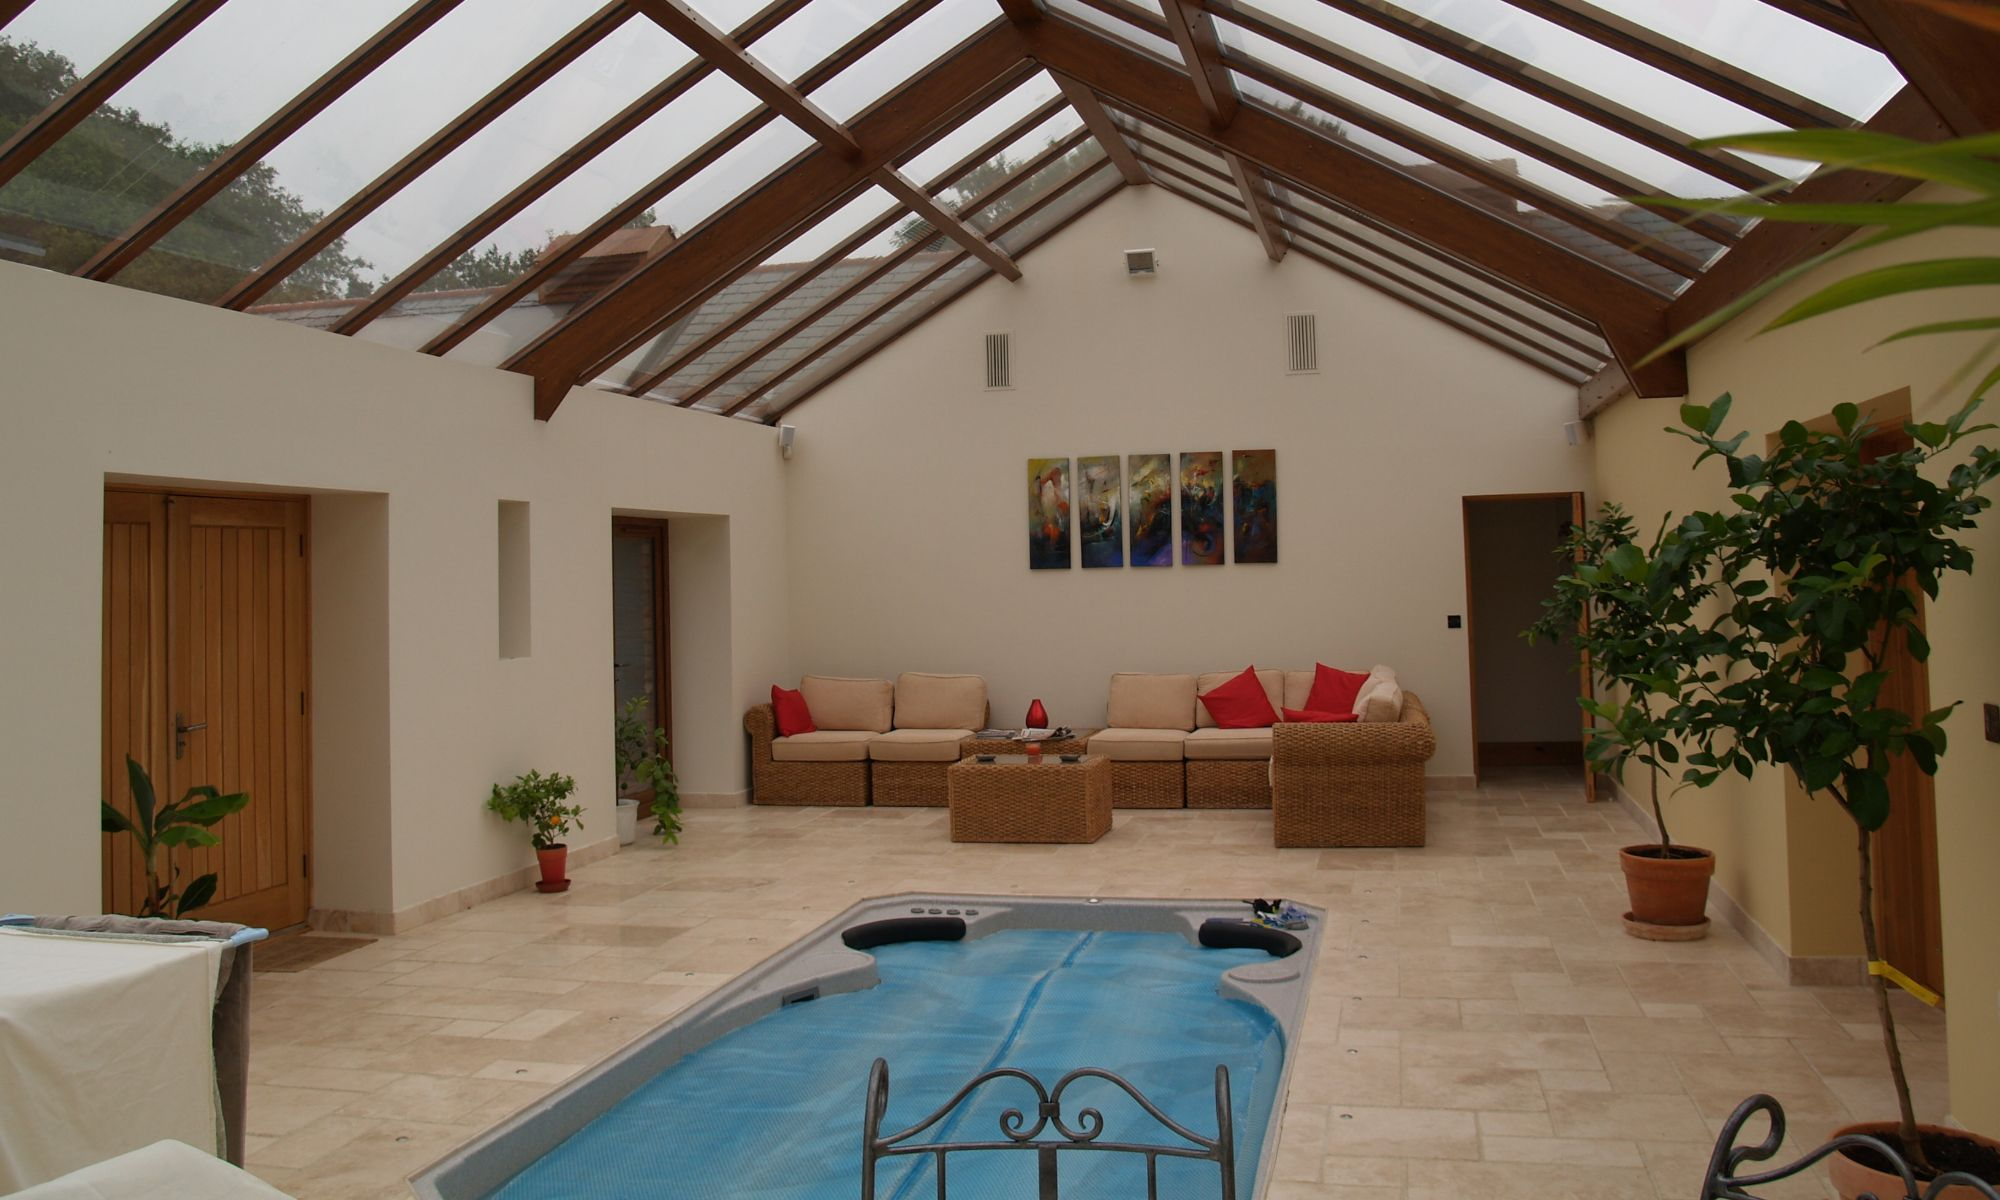 Large Bespoke Conservatory with pool